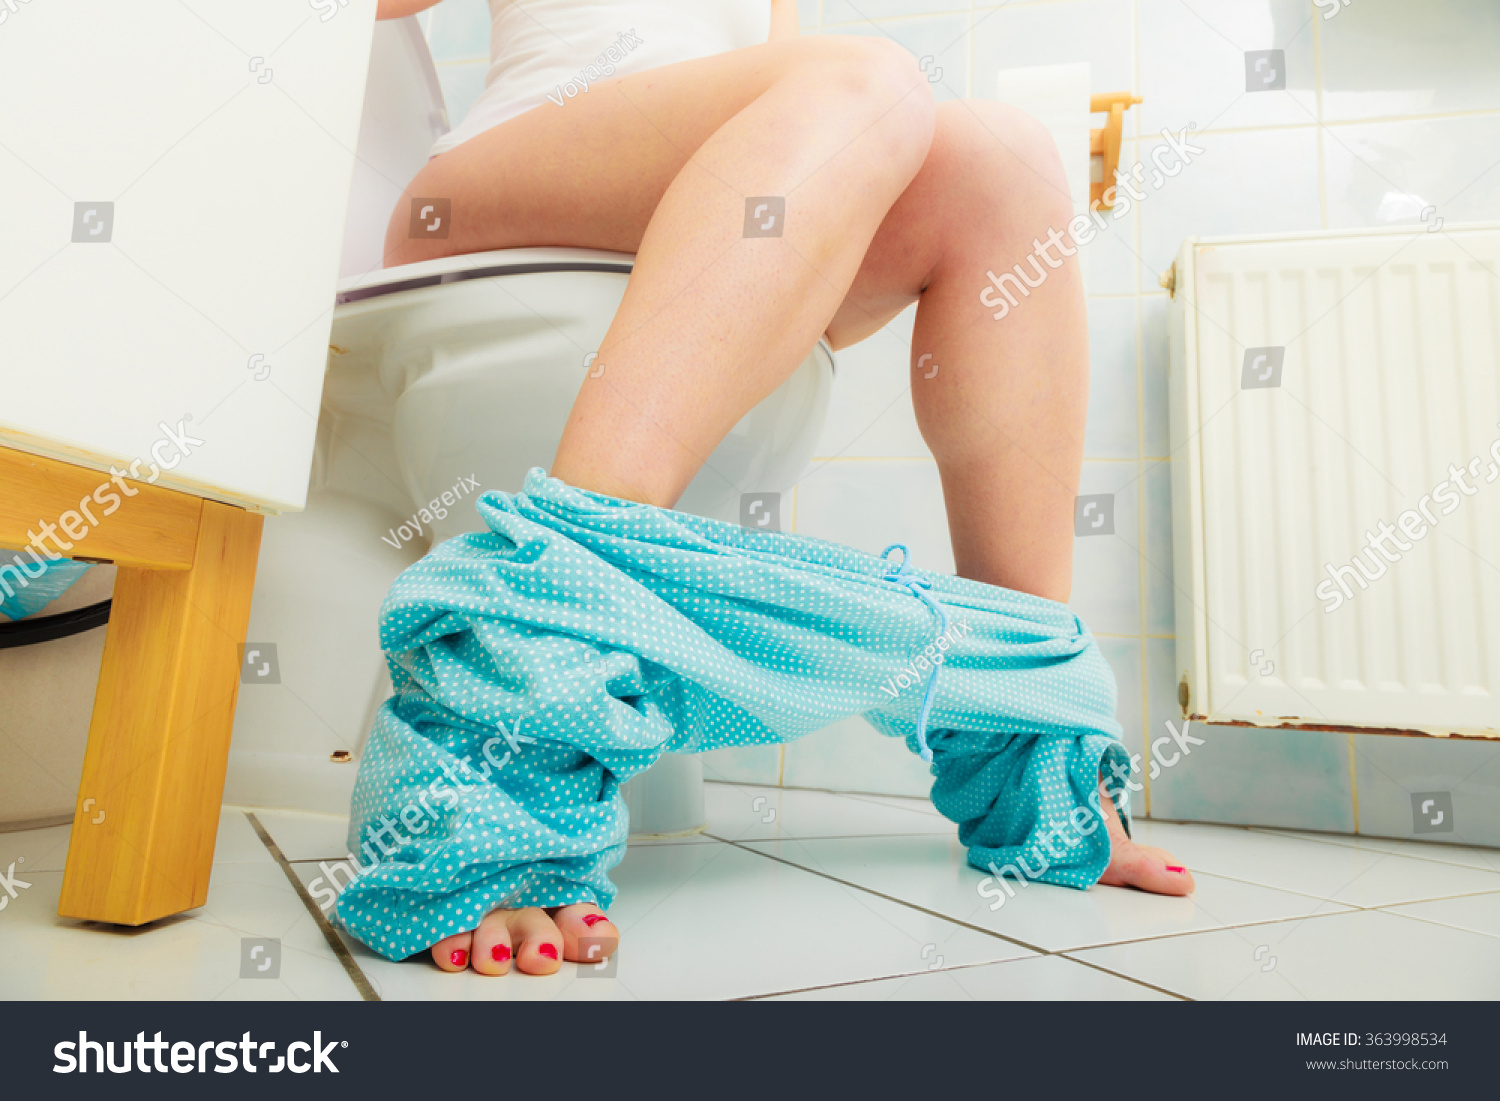 Woman Constipation Diarrhoea Sitting On Toilet Stock Photo ...